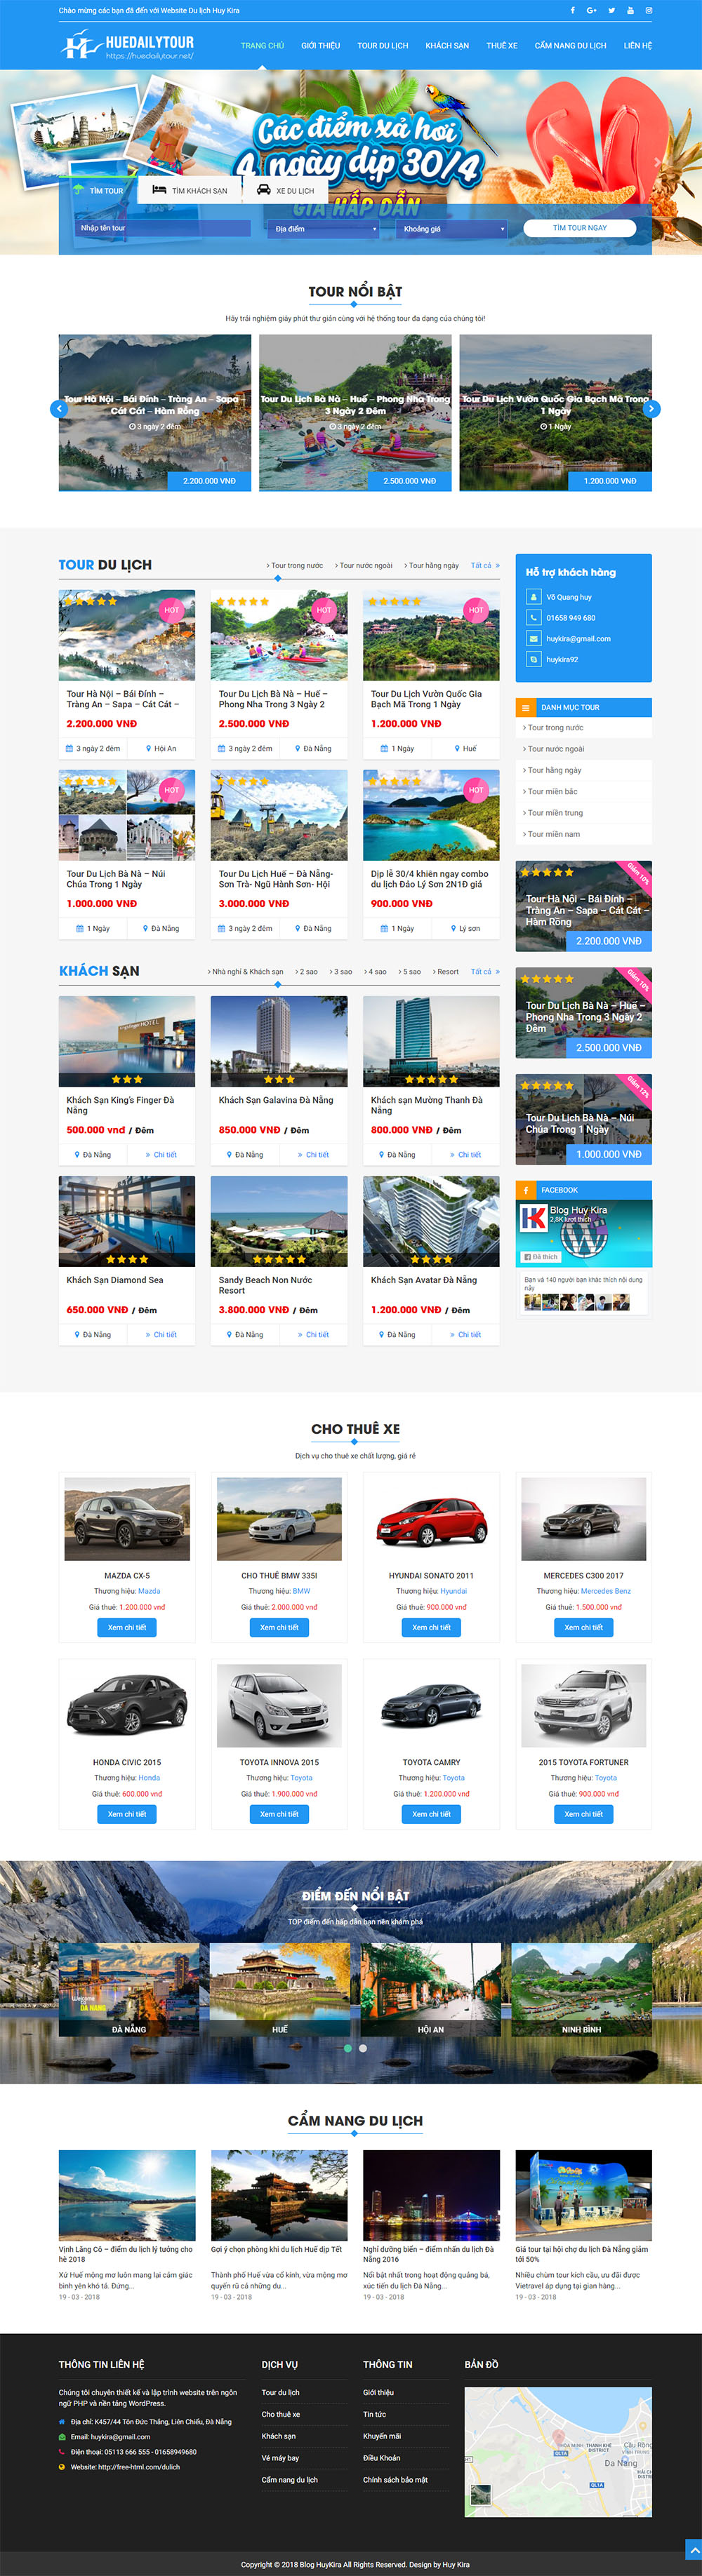 Giao diện trang chủ website tour du lịch